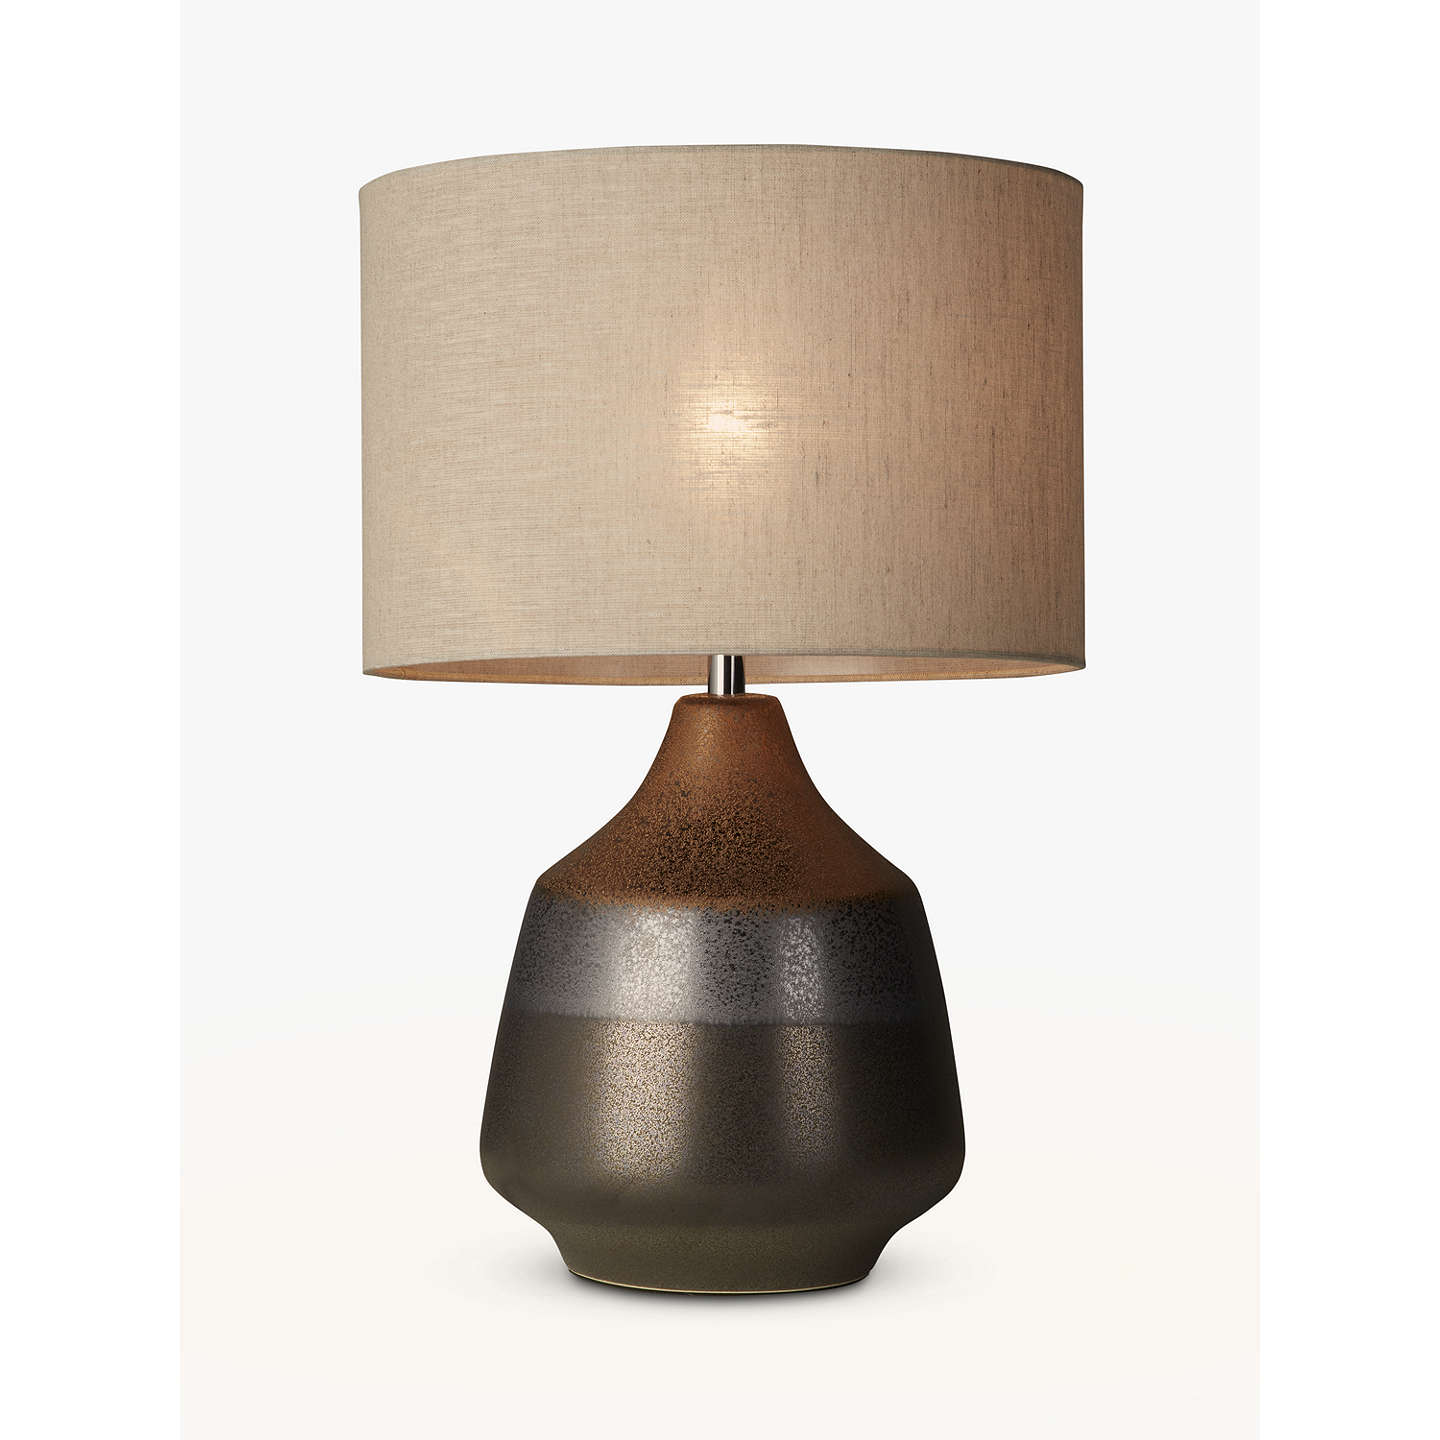 John lewis delaney metallic glaze ceramic table lamp bronze at john buyjohn lewis delaney metallic glaze ceramic table lamp bronze online at johnlewis aloadofball Gallery